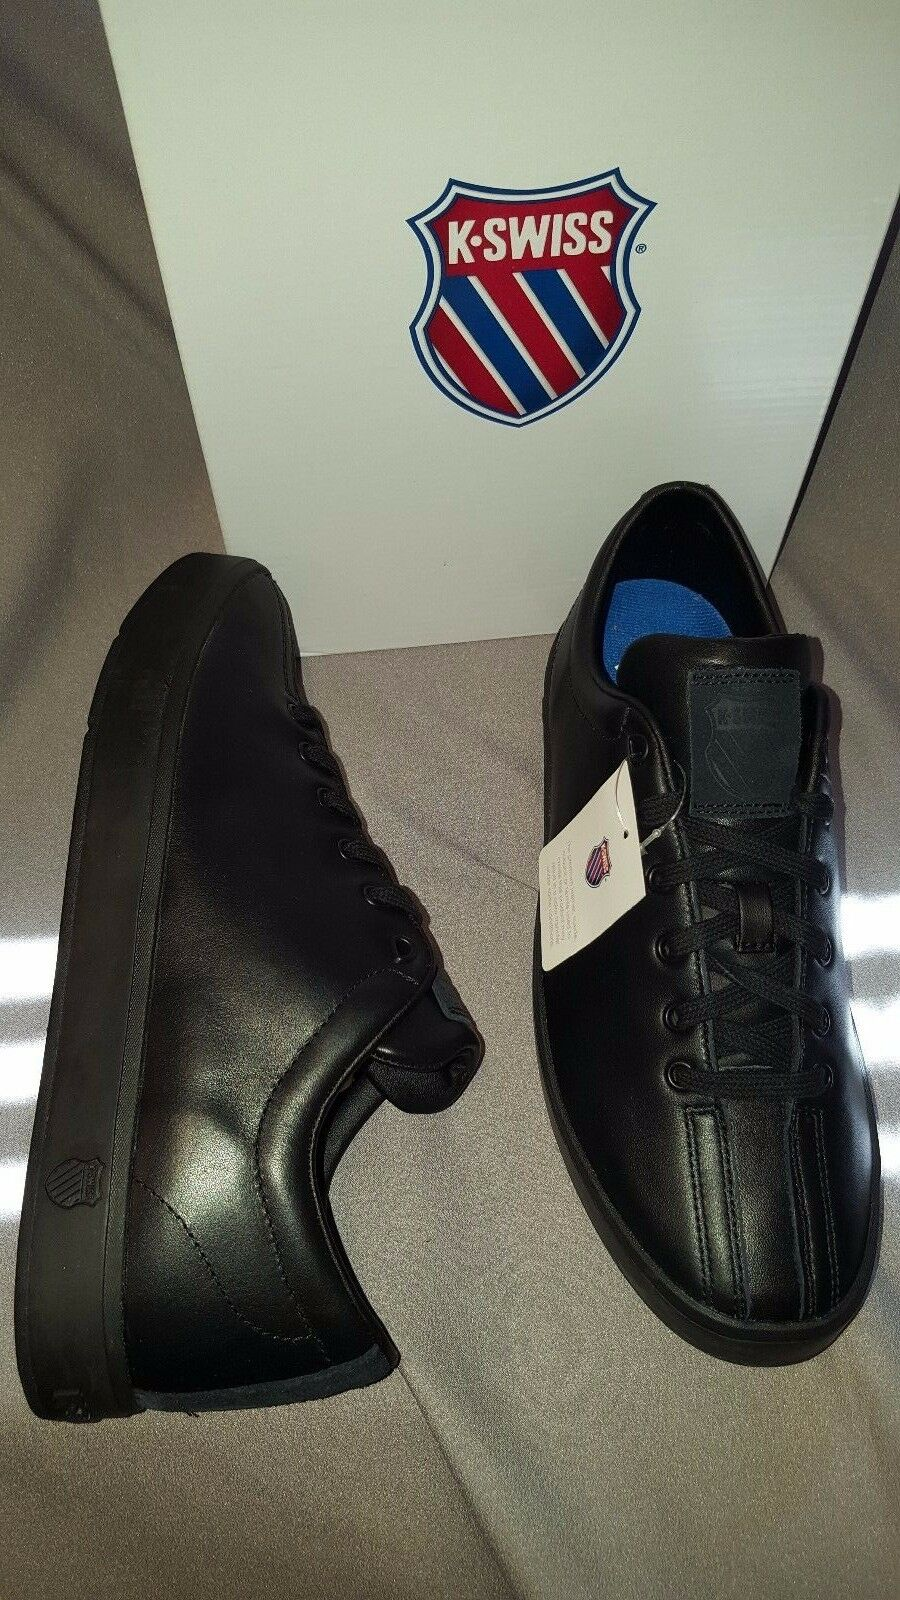 K-SWISS CLEAN CLASSIC LOW BLACK BLACK 02874001 MENS SHOES SIZE 8 NEW IN BOX